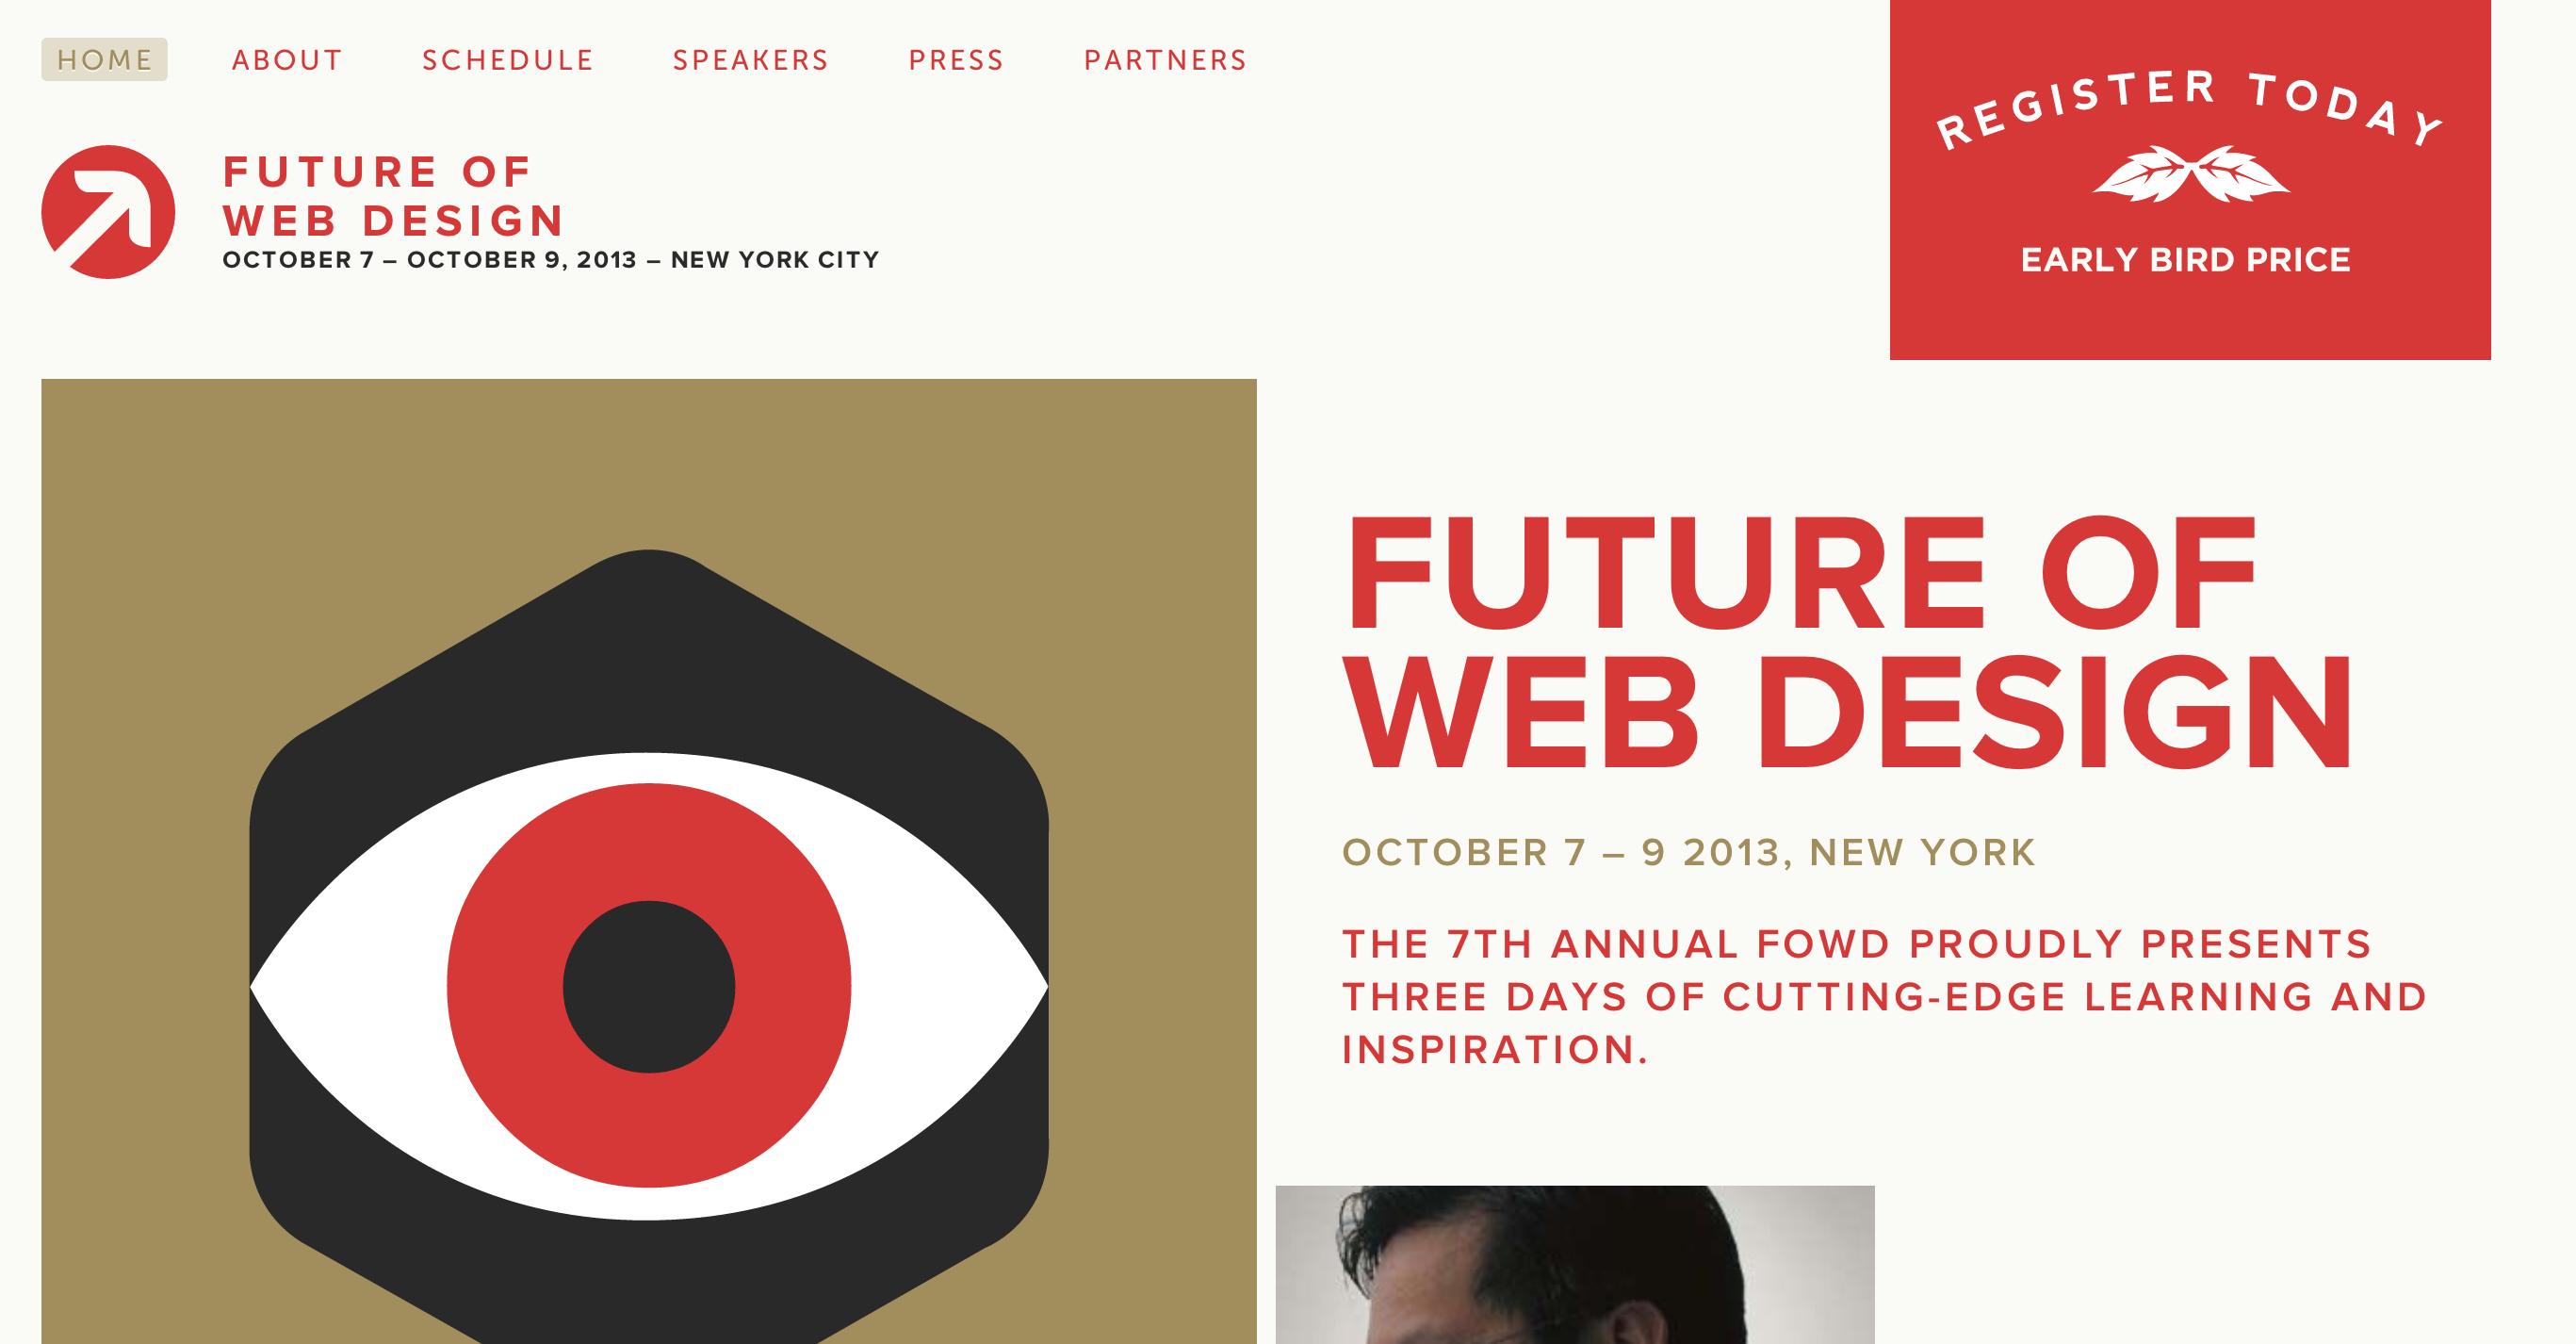 Web Design Conferences 2013